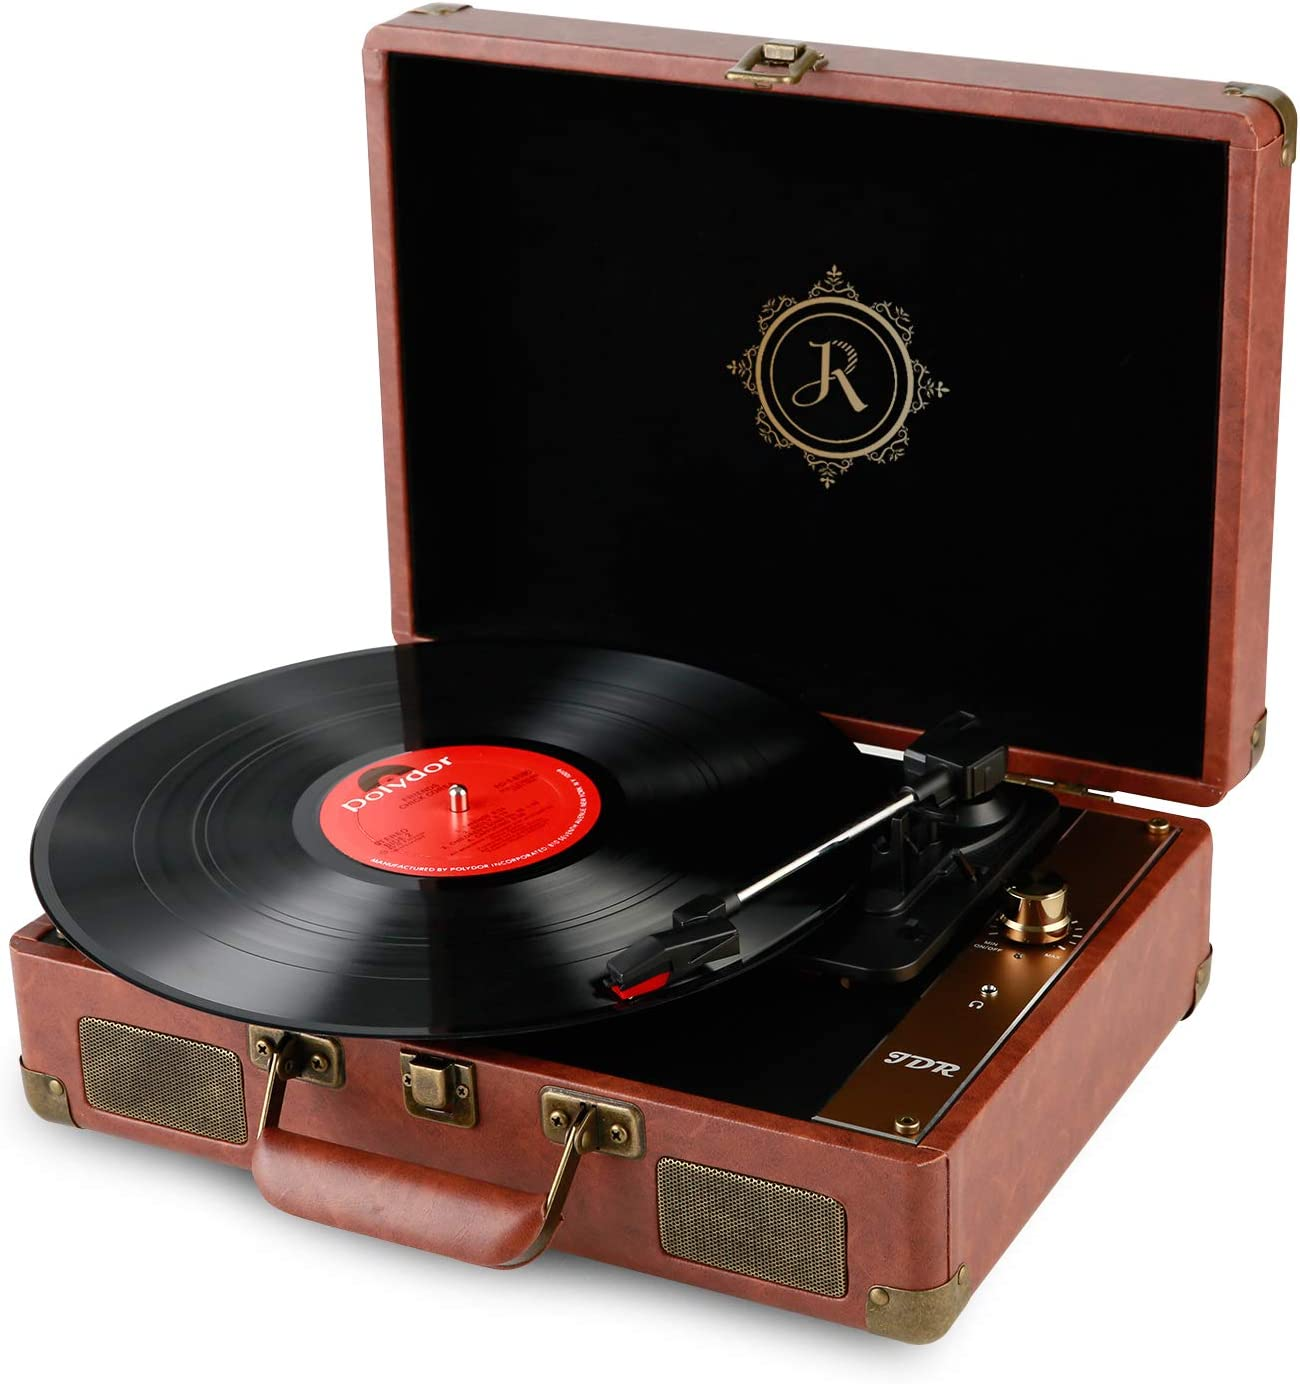 Anti-Skate Stylus for Entertainment and Home Nostalgic Decor JDR Record Player 3-Speed Bluetooth Portable Suitcase RP-1 Turntable with Built-in Speakers Convert Vinyl to Digital AUX in